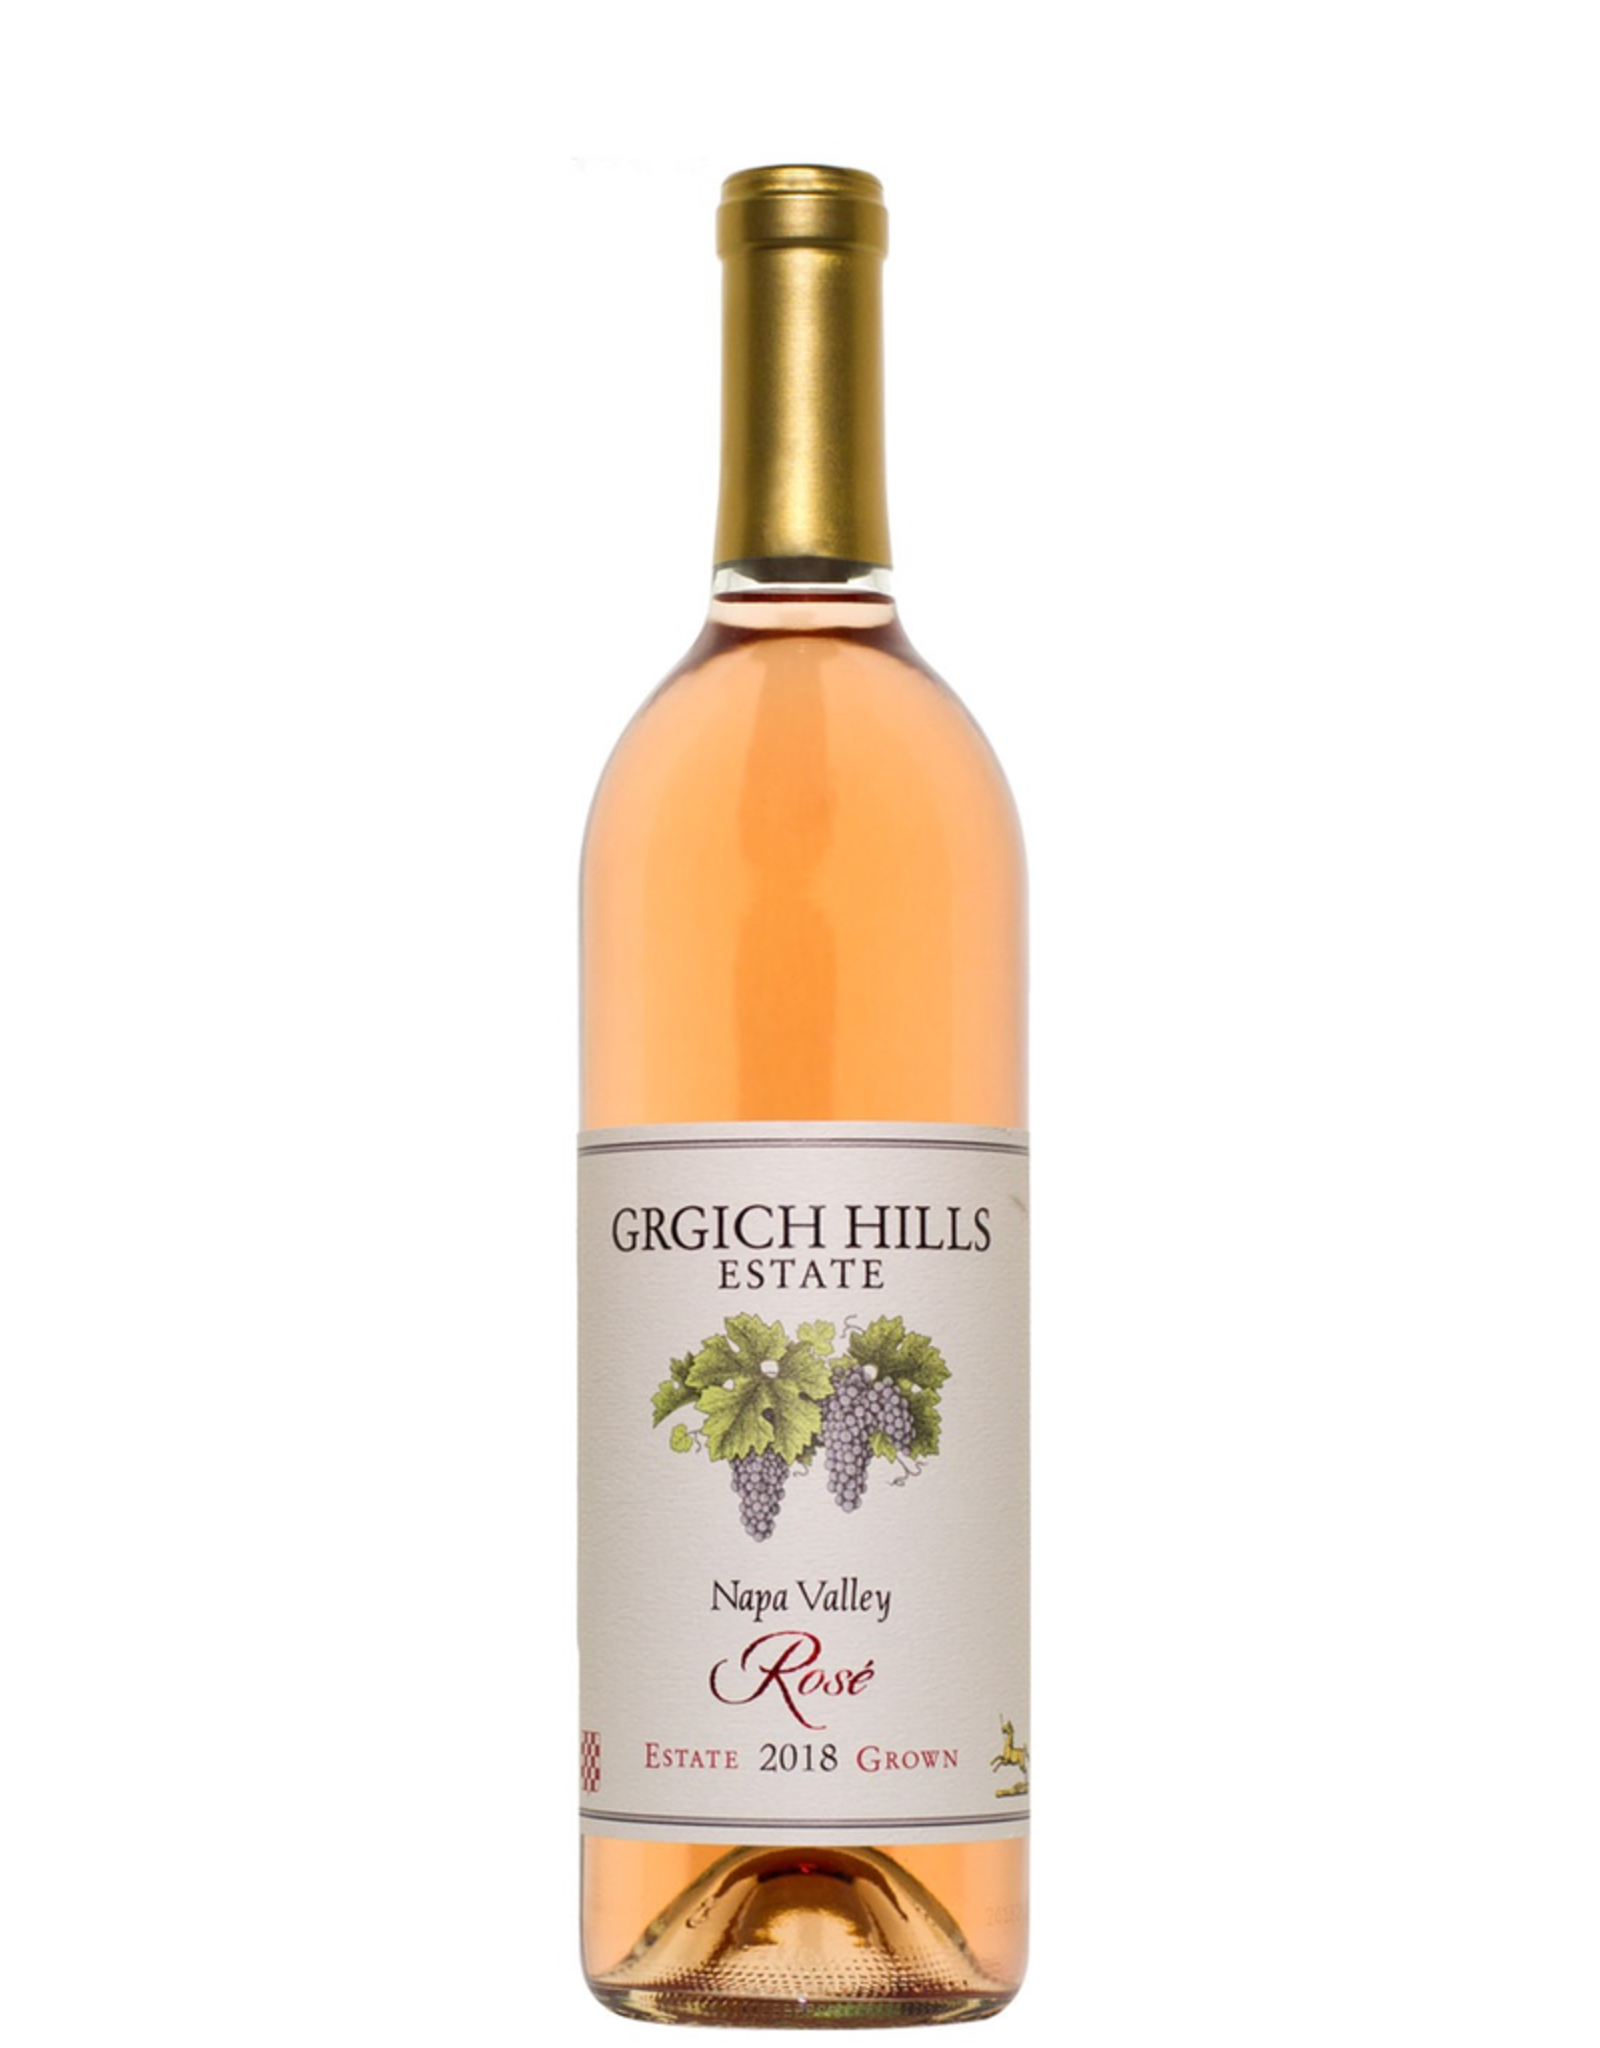 Rose Wine 2018, Grgich Hills Estate, Rose, Napa Valley, Napa, California, 13.55 Alc, CTnr